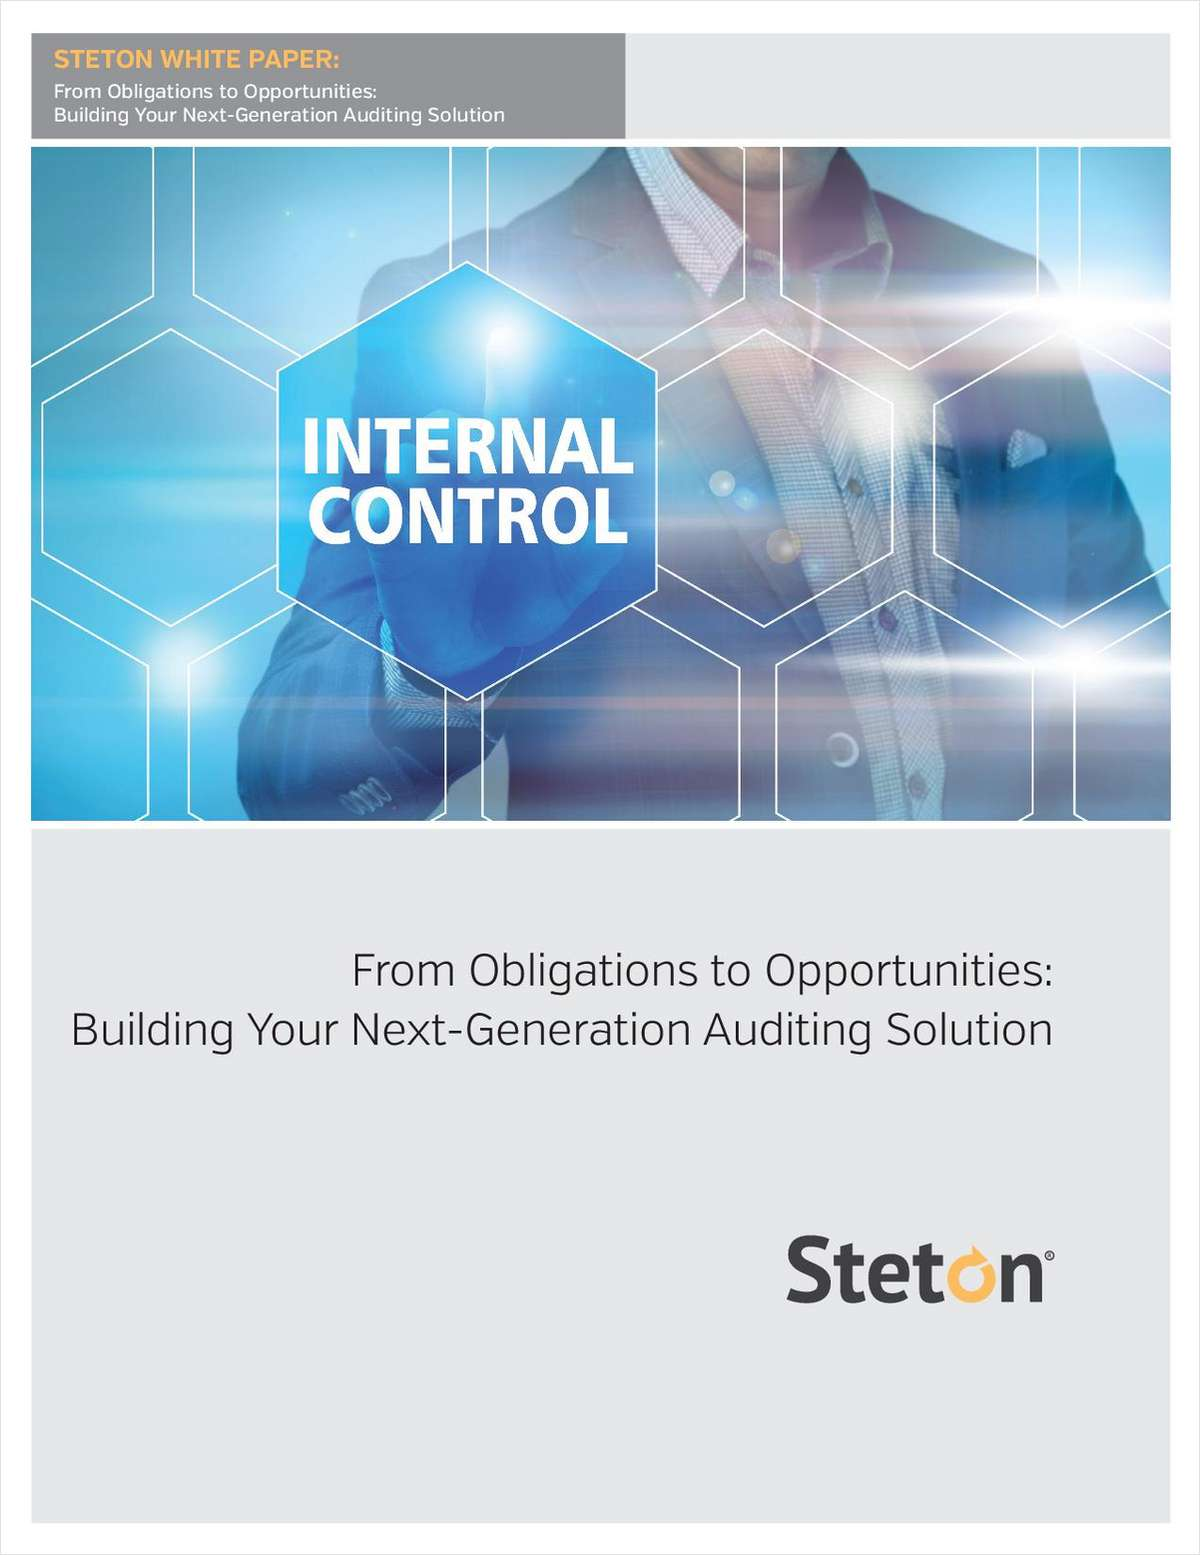 Build a Next-Generation Auditing Solution for Your Hospitality Business